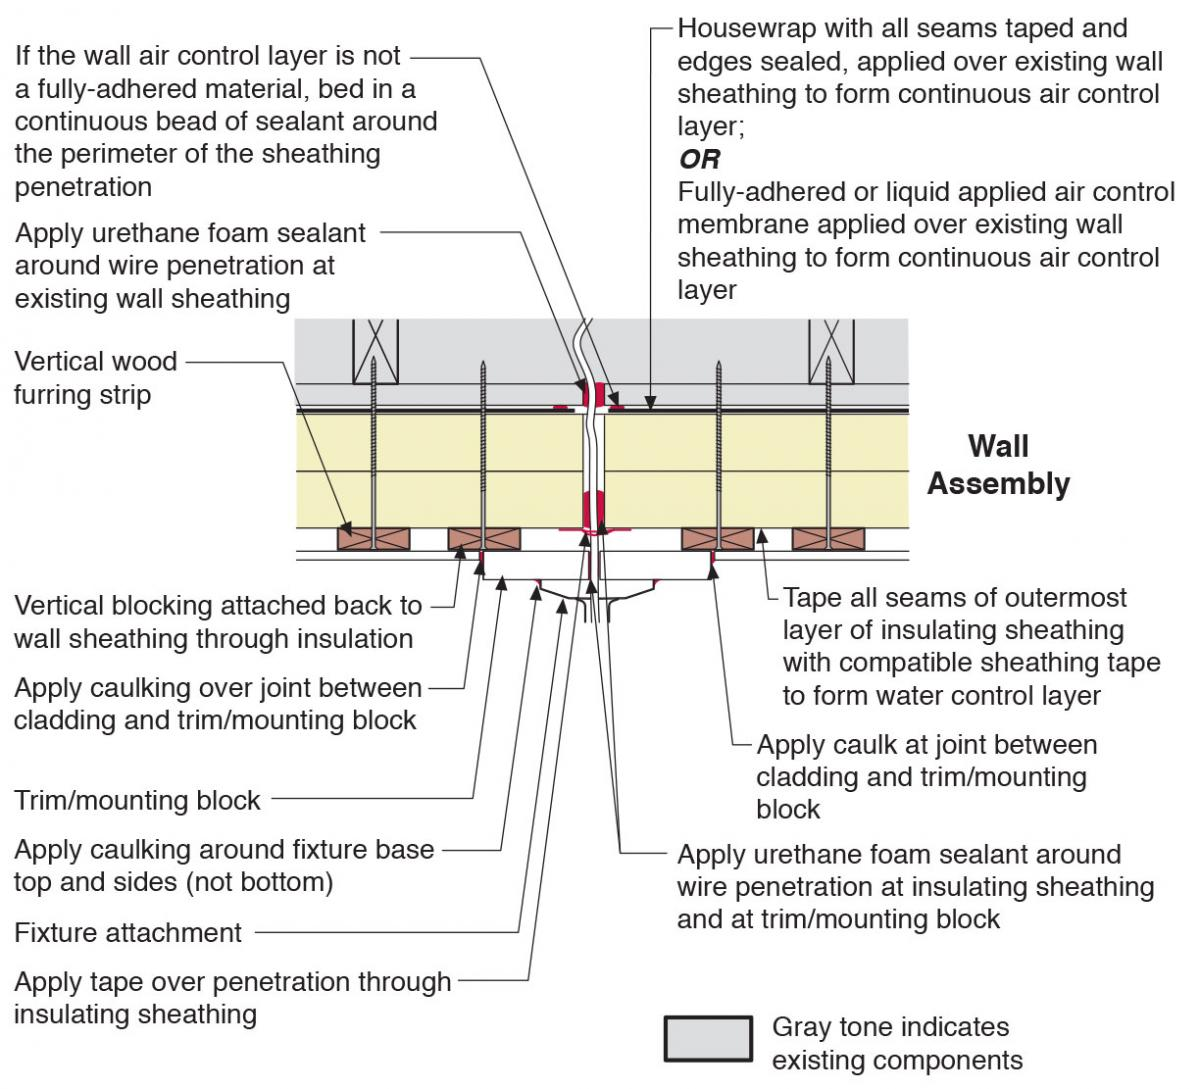 Plan view of electric wiring for light fixture installed in exterior wall showing flashing and air sealing details